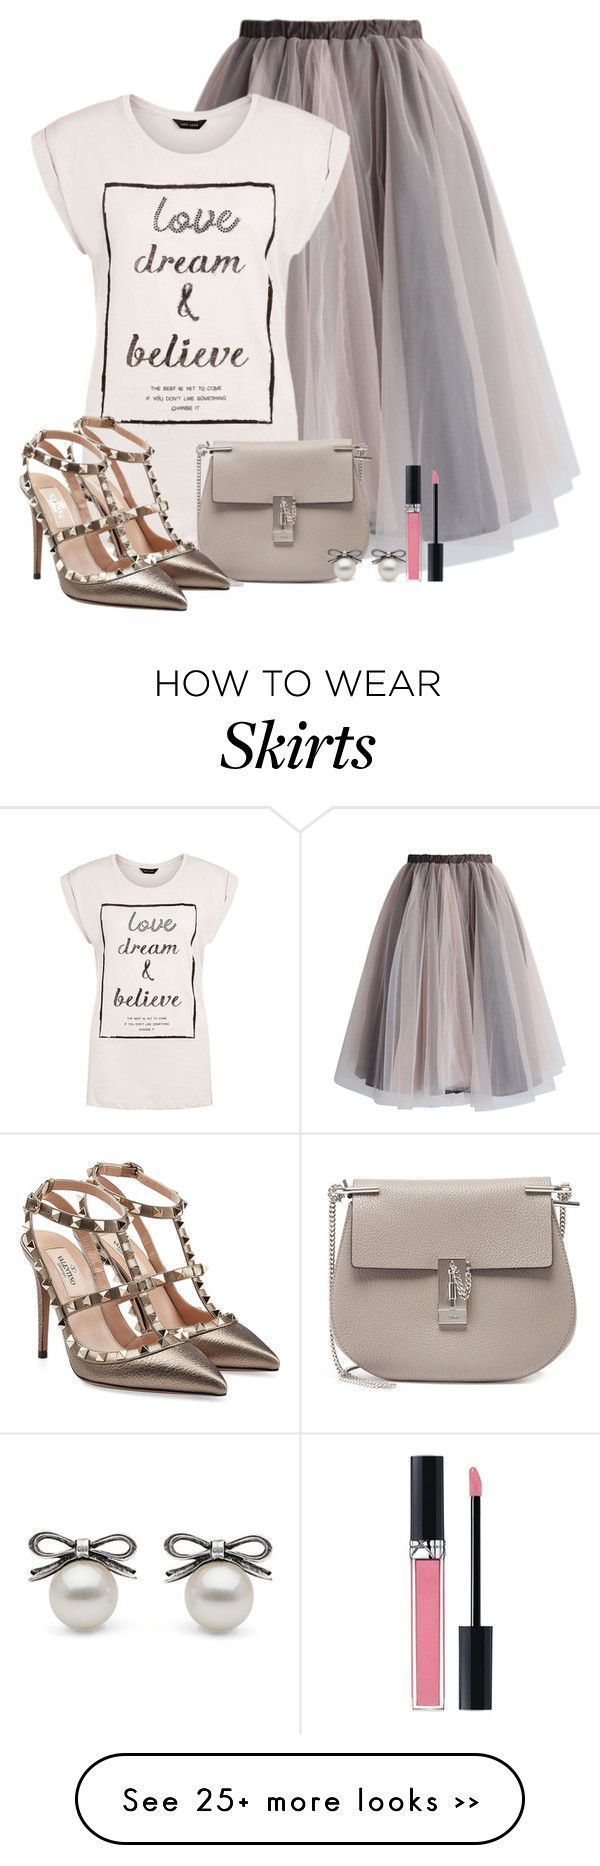 Jupon en tulle : Skirts Sets